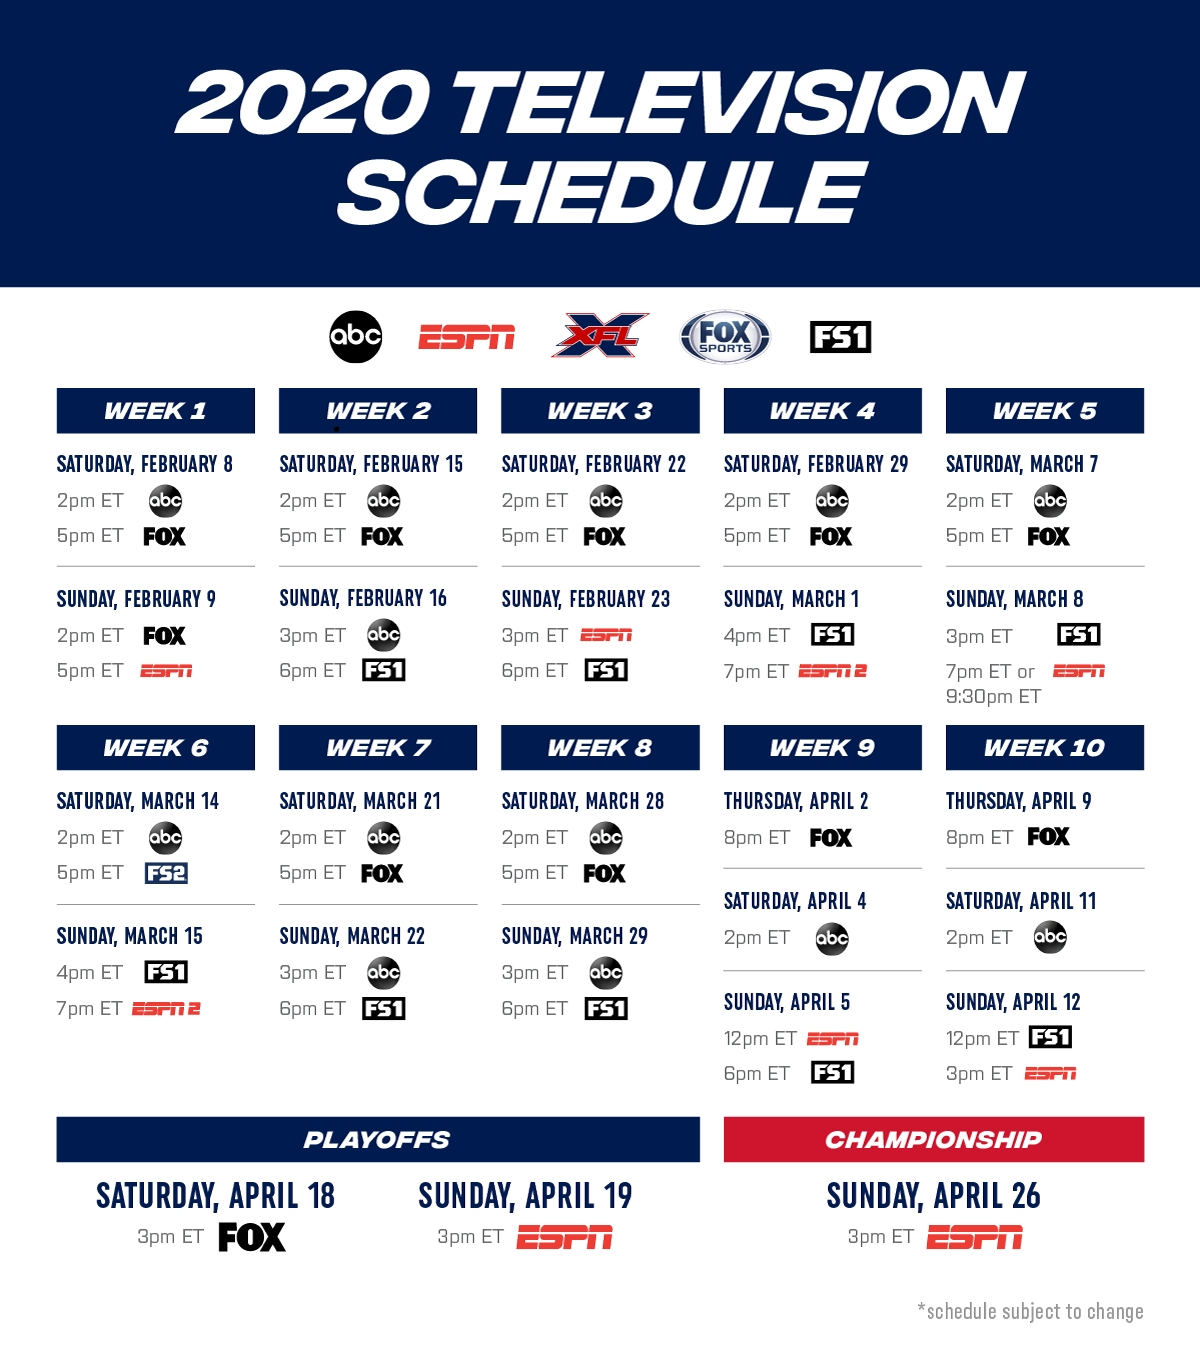 Xfl 2020 Television Schedule Review in Printable 2020 Nfl Playoff Schedule